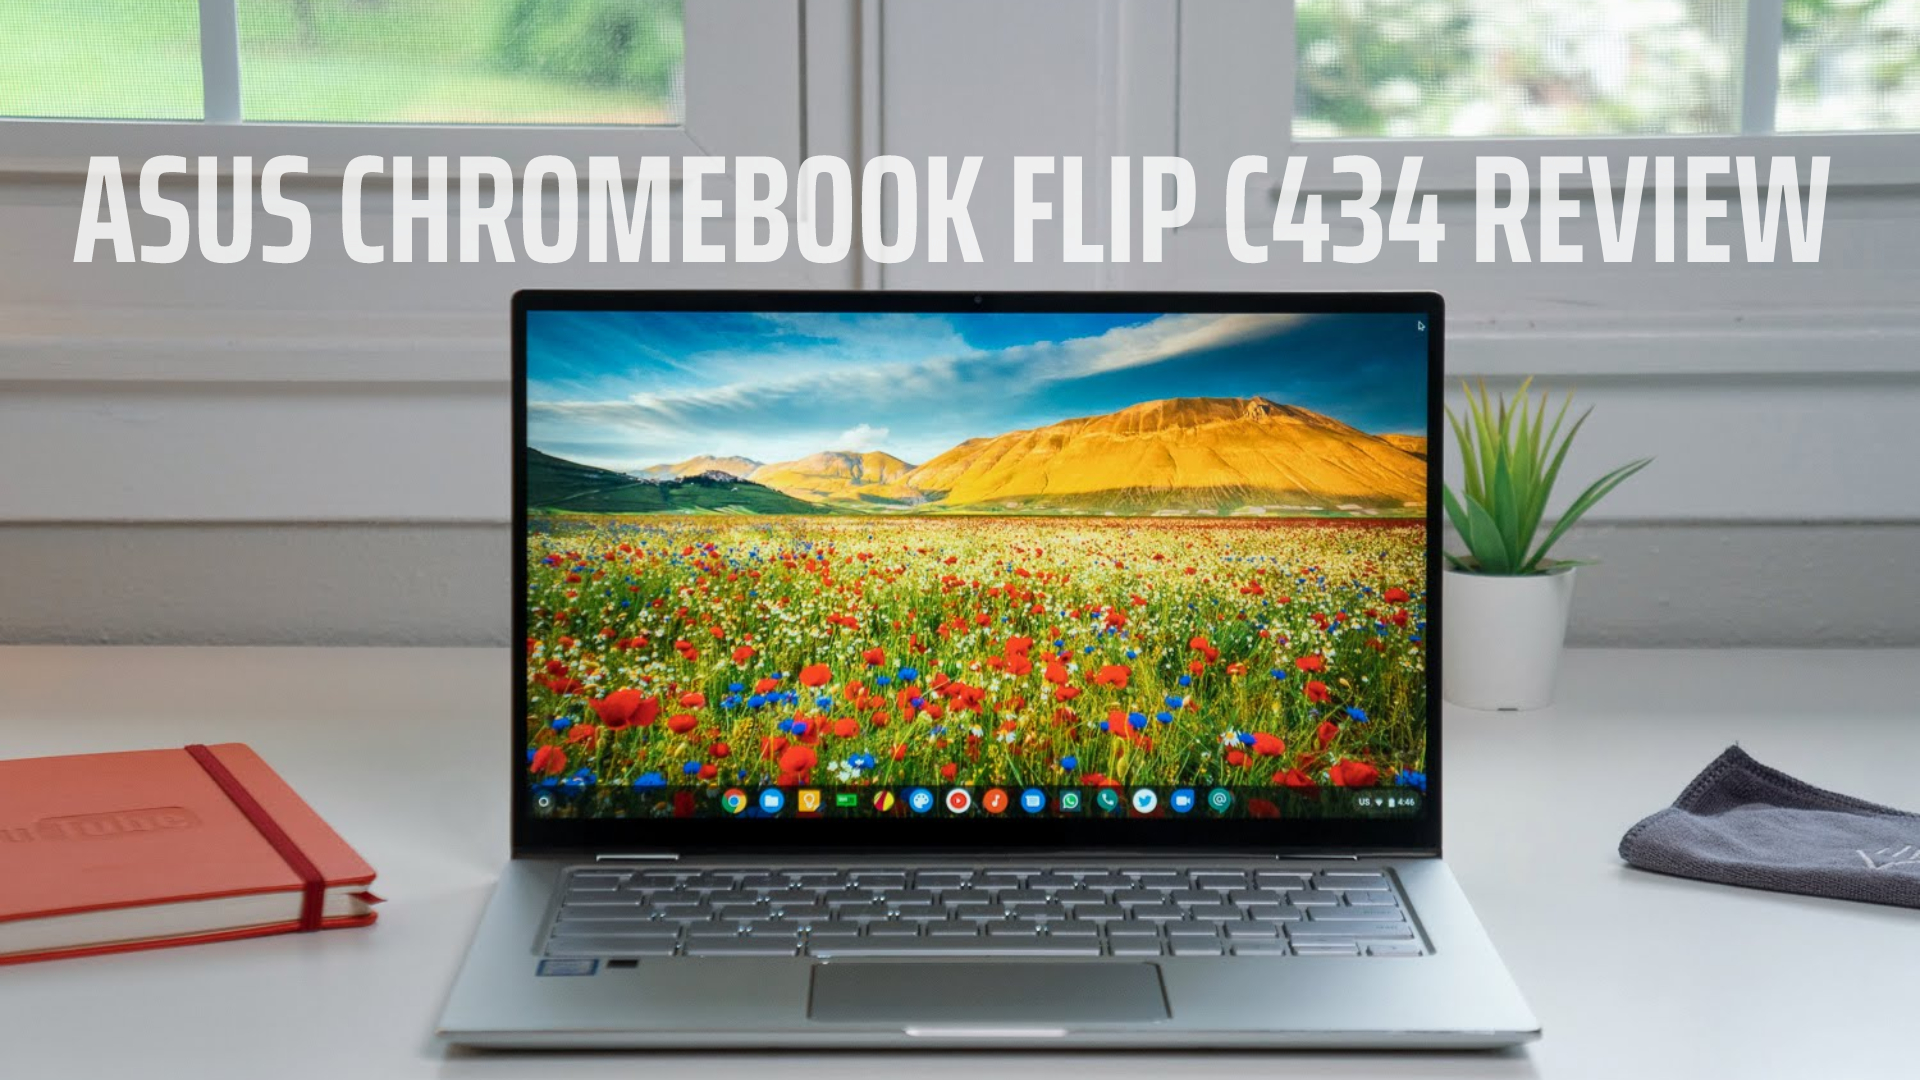 ASUS Chromebook Flip C434 Review